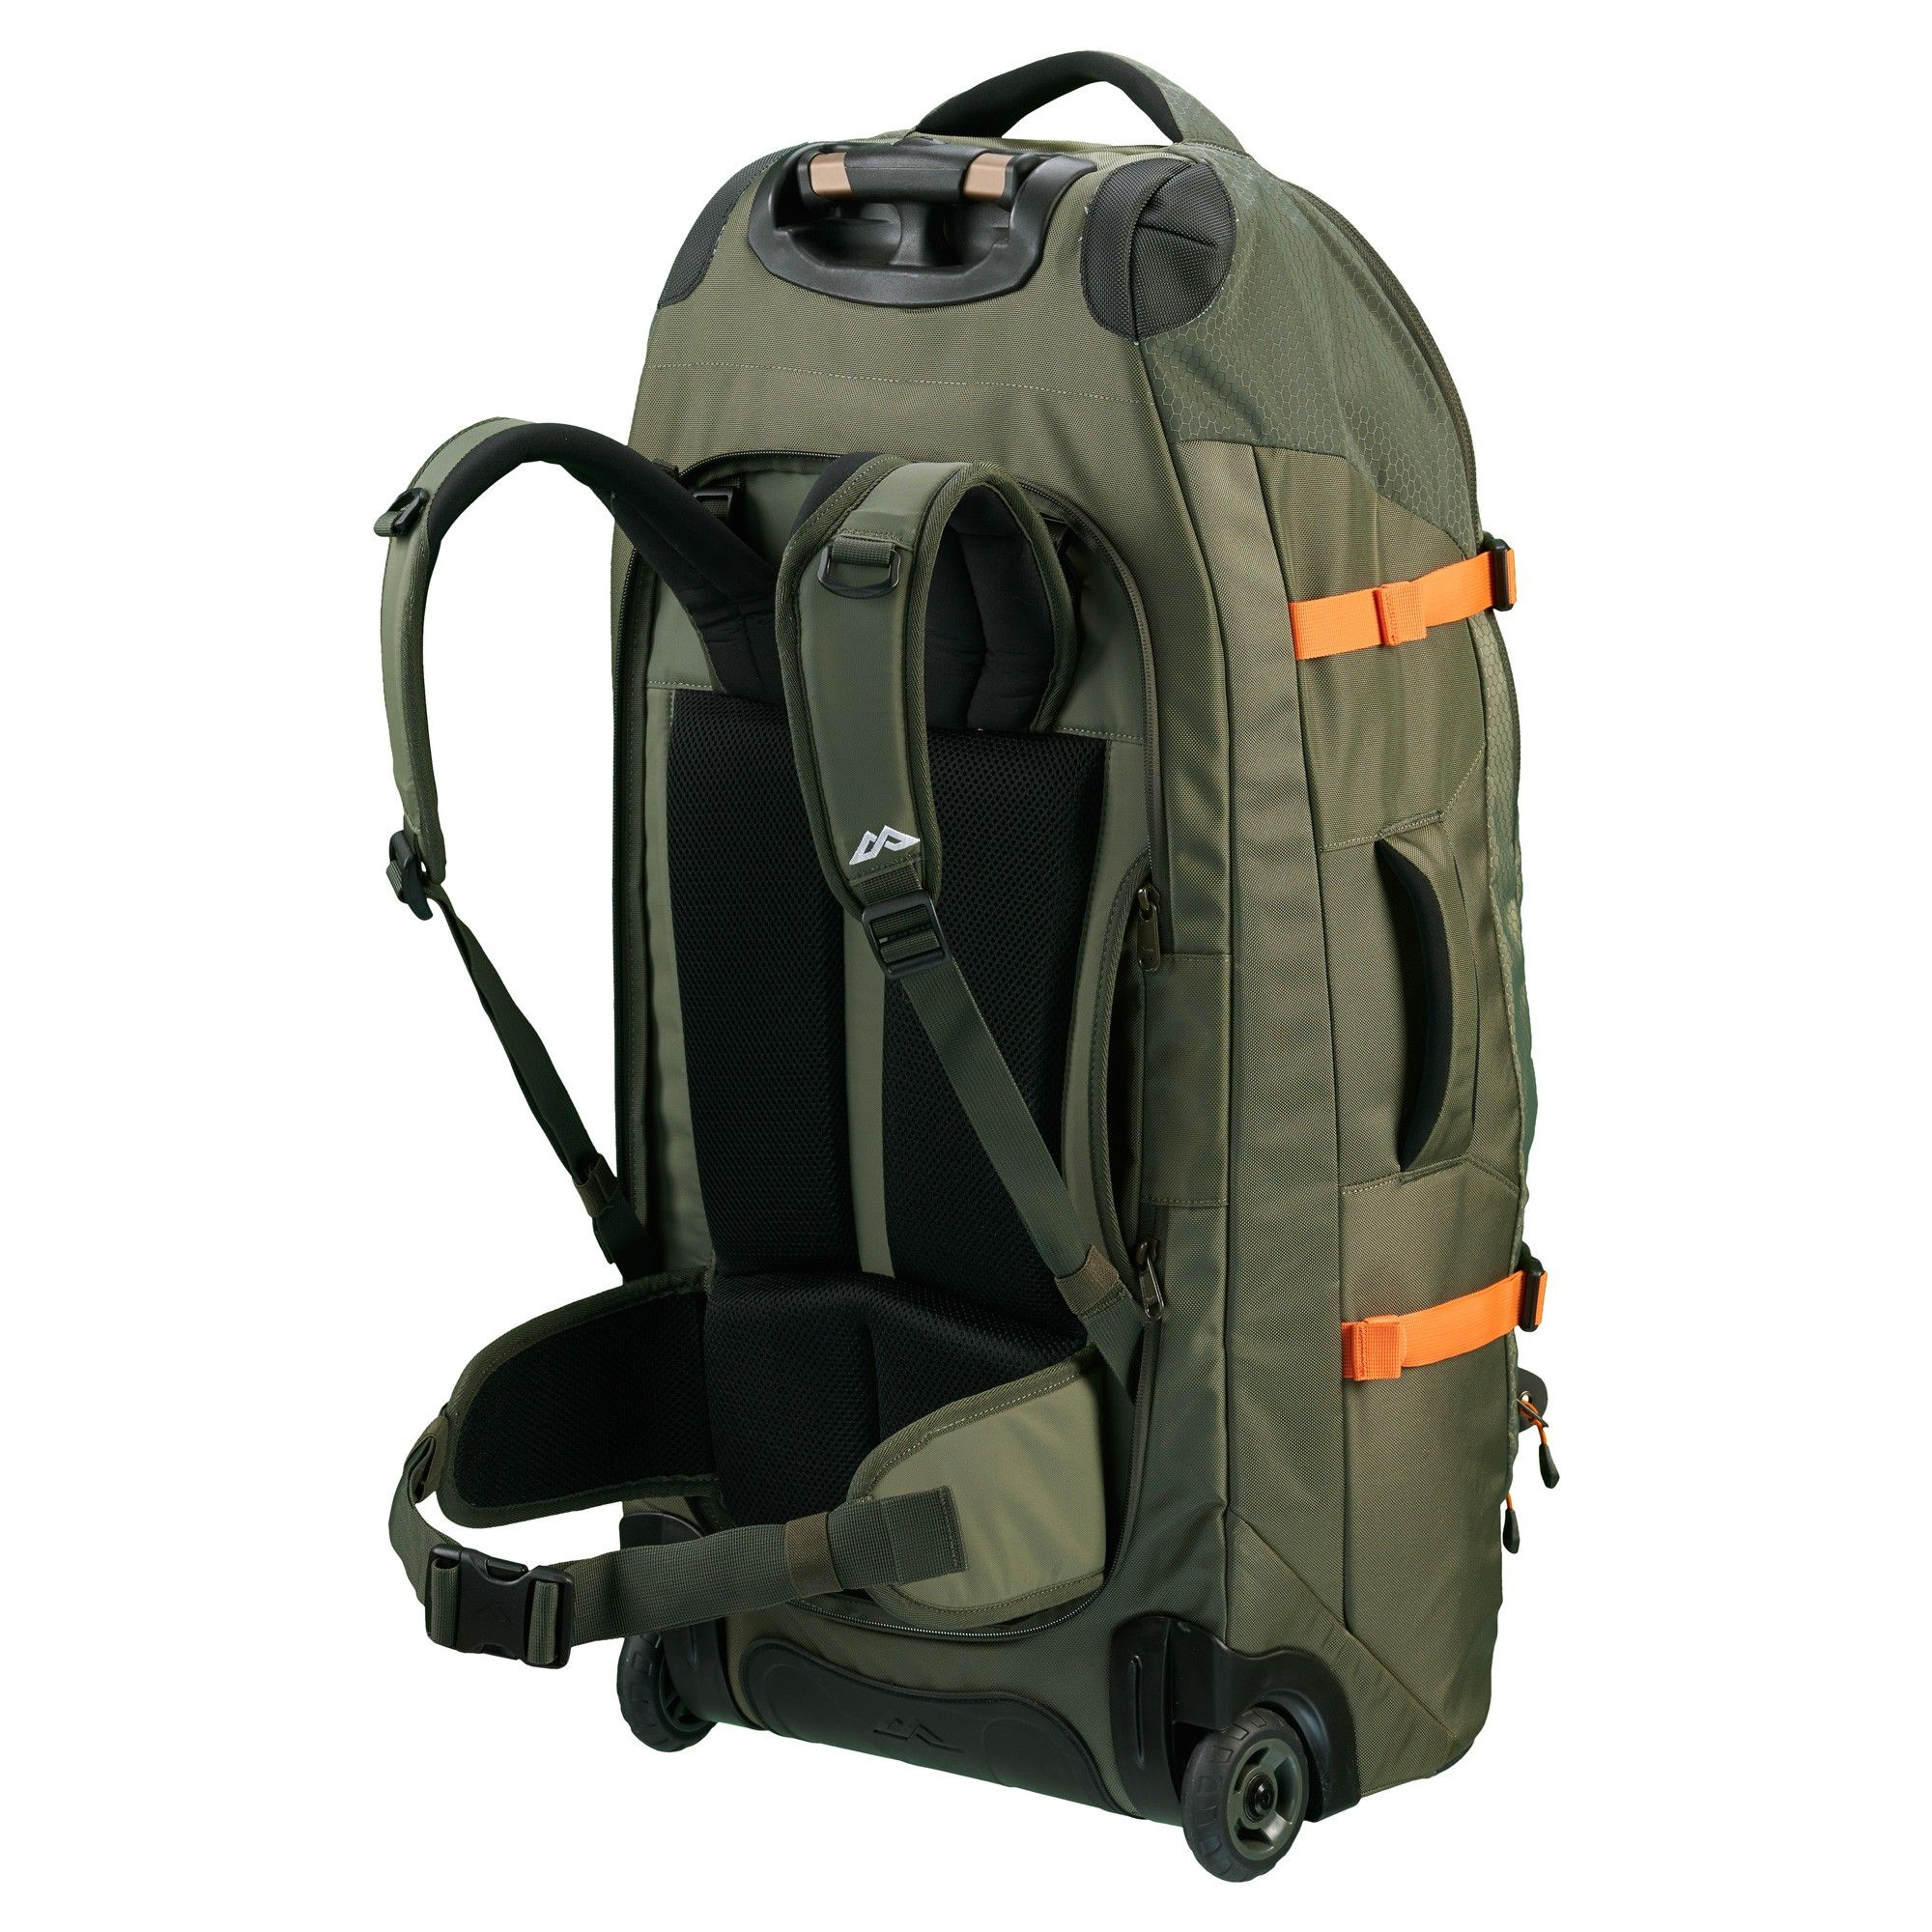 Hybrid 70L Backpack Harness Wheeled Luggage Trolley v3 - Conifer ...